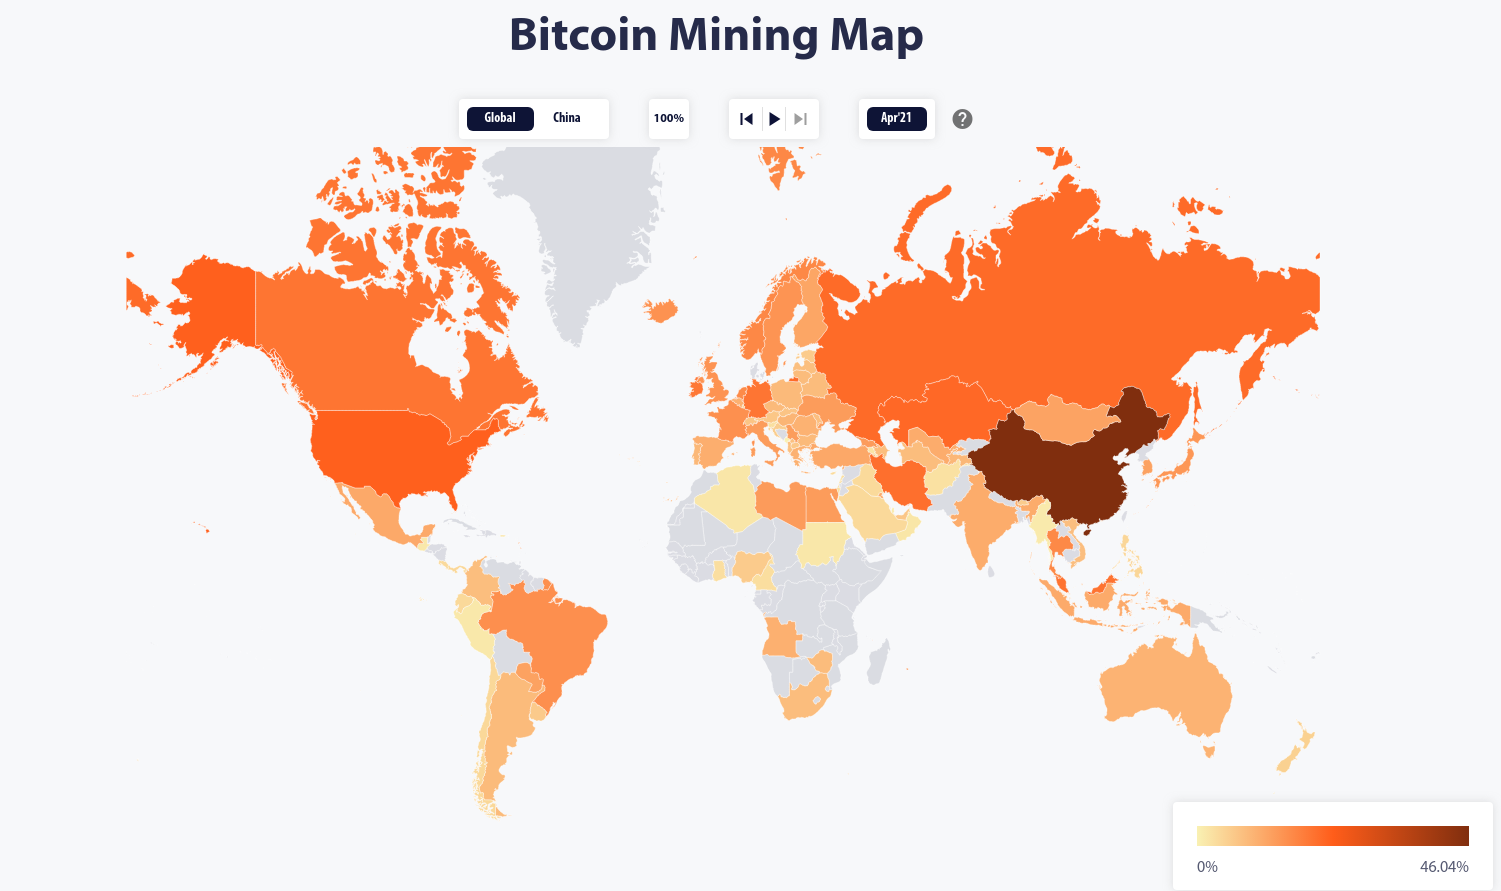 Before it's crackdown in the summer of 2021, China contributed a great deal of Bitcoin's mining power. Where the new power centers will be is still in flux. By the Cambridge Bitcoin Electricity Consumption Index.